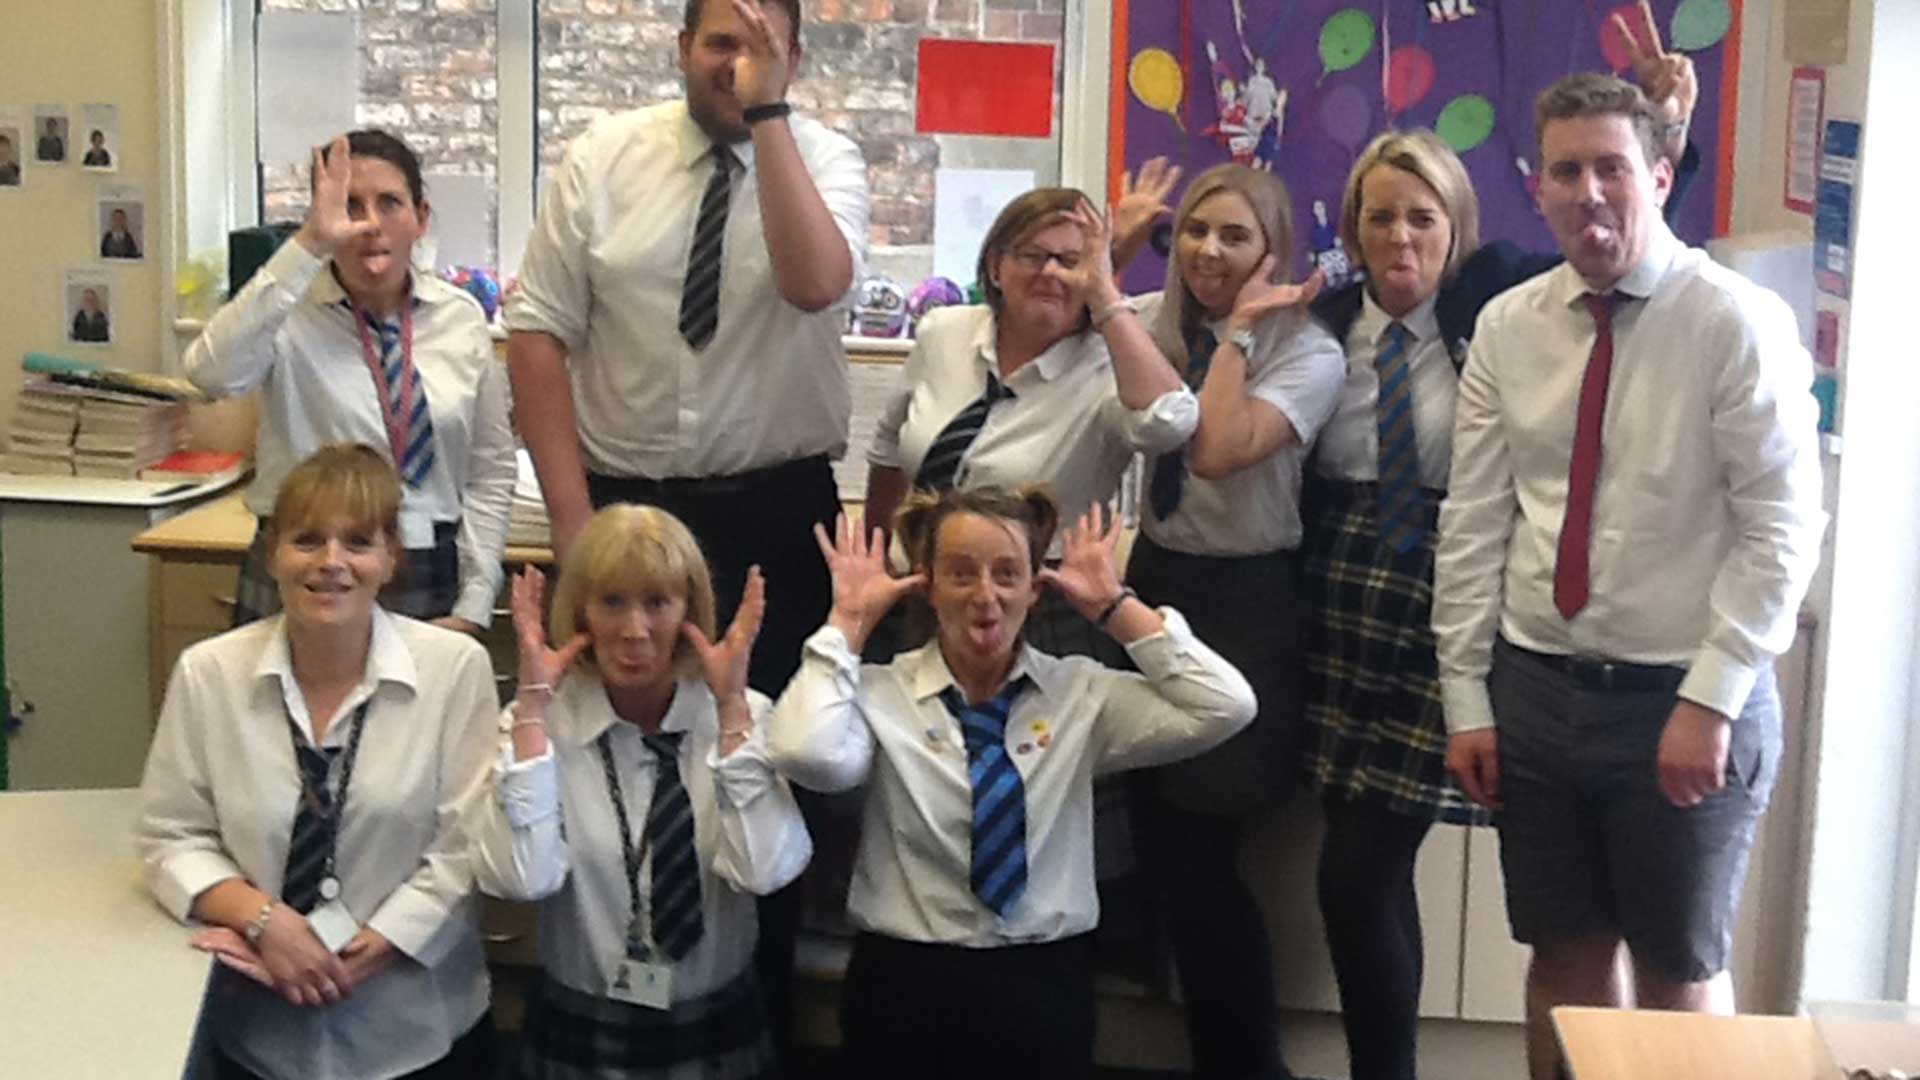 Wolviston Primary School, in Billingham, nominated for the happiest school in the UK award.